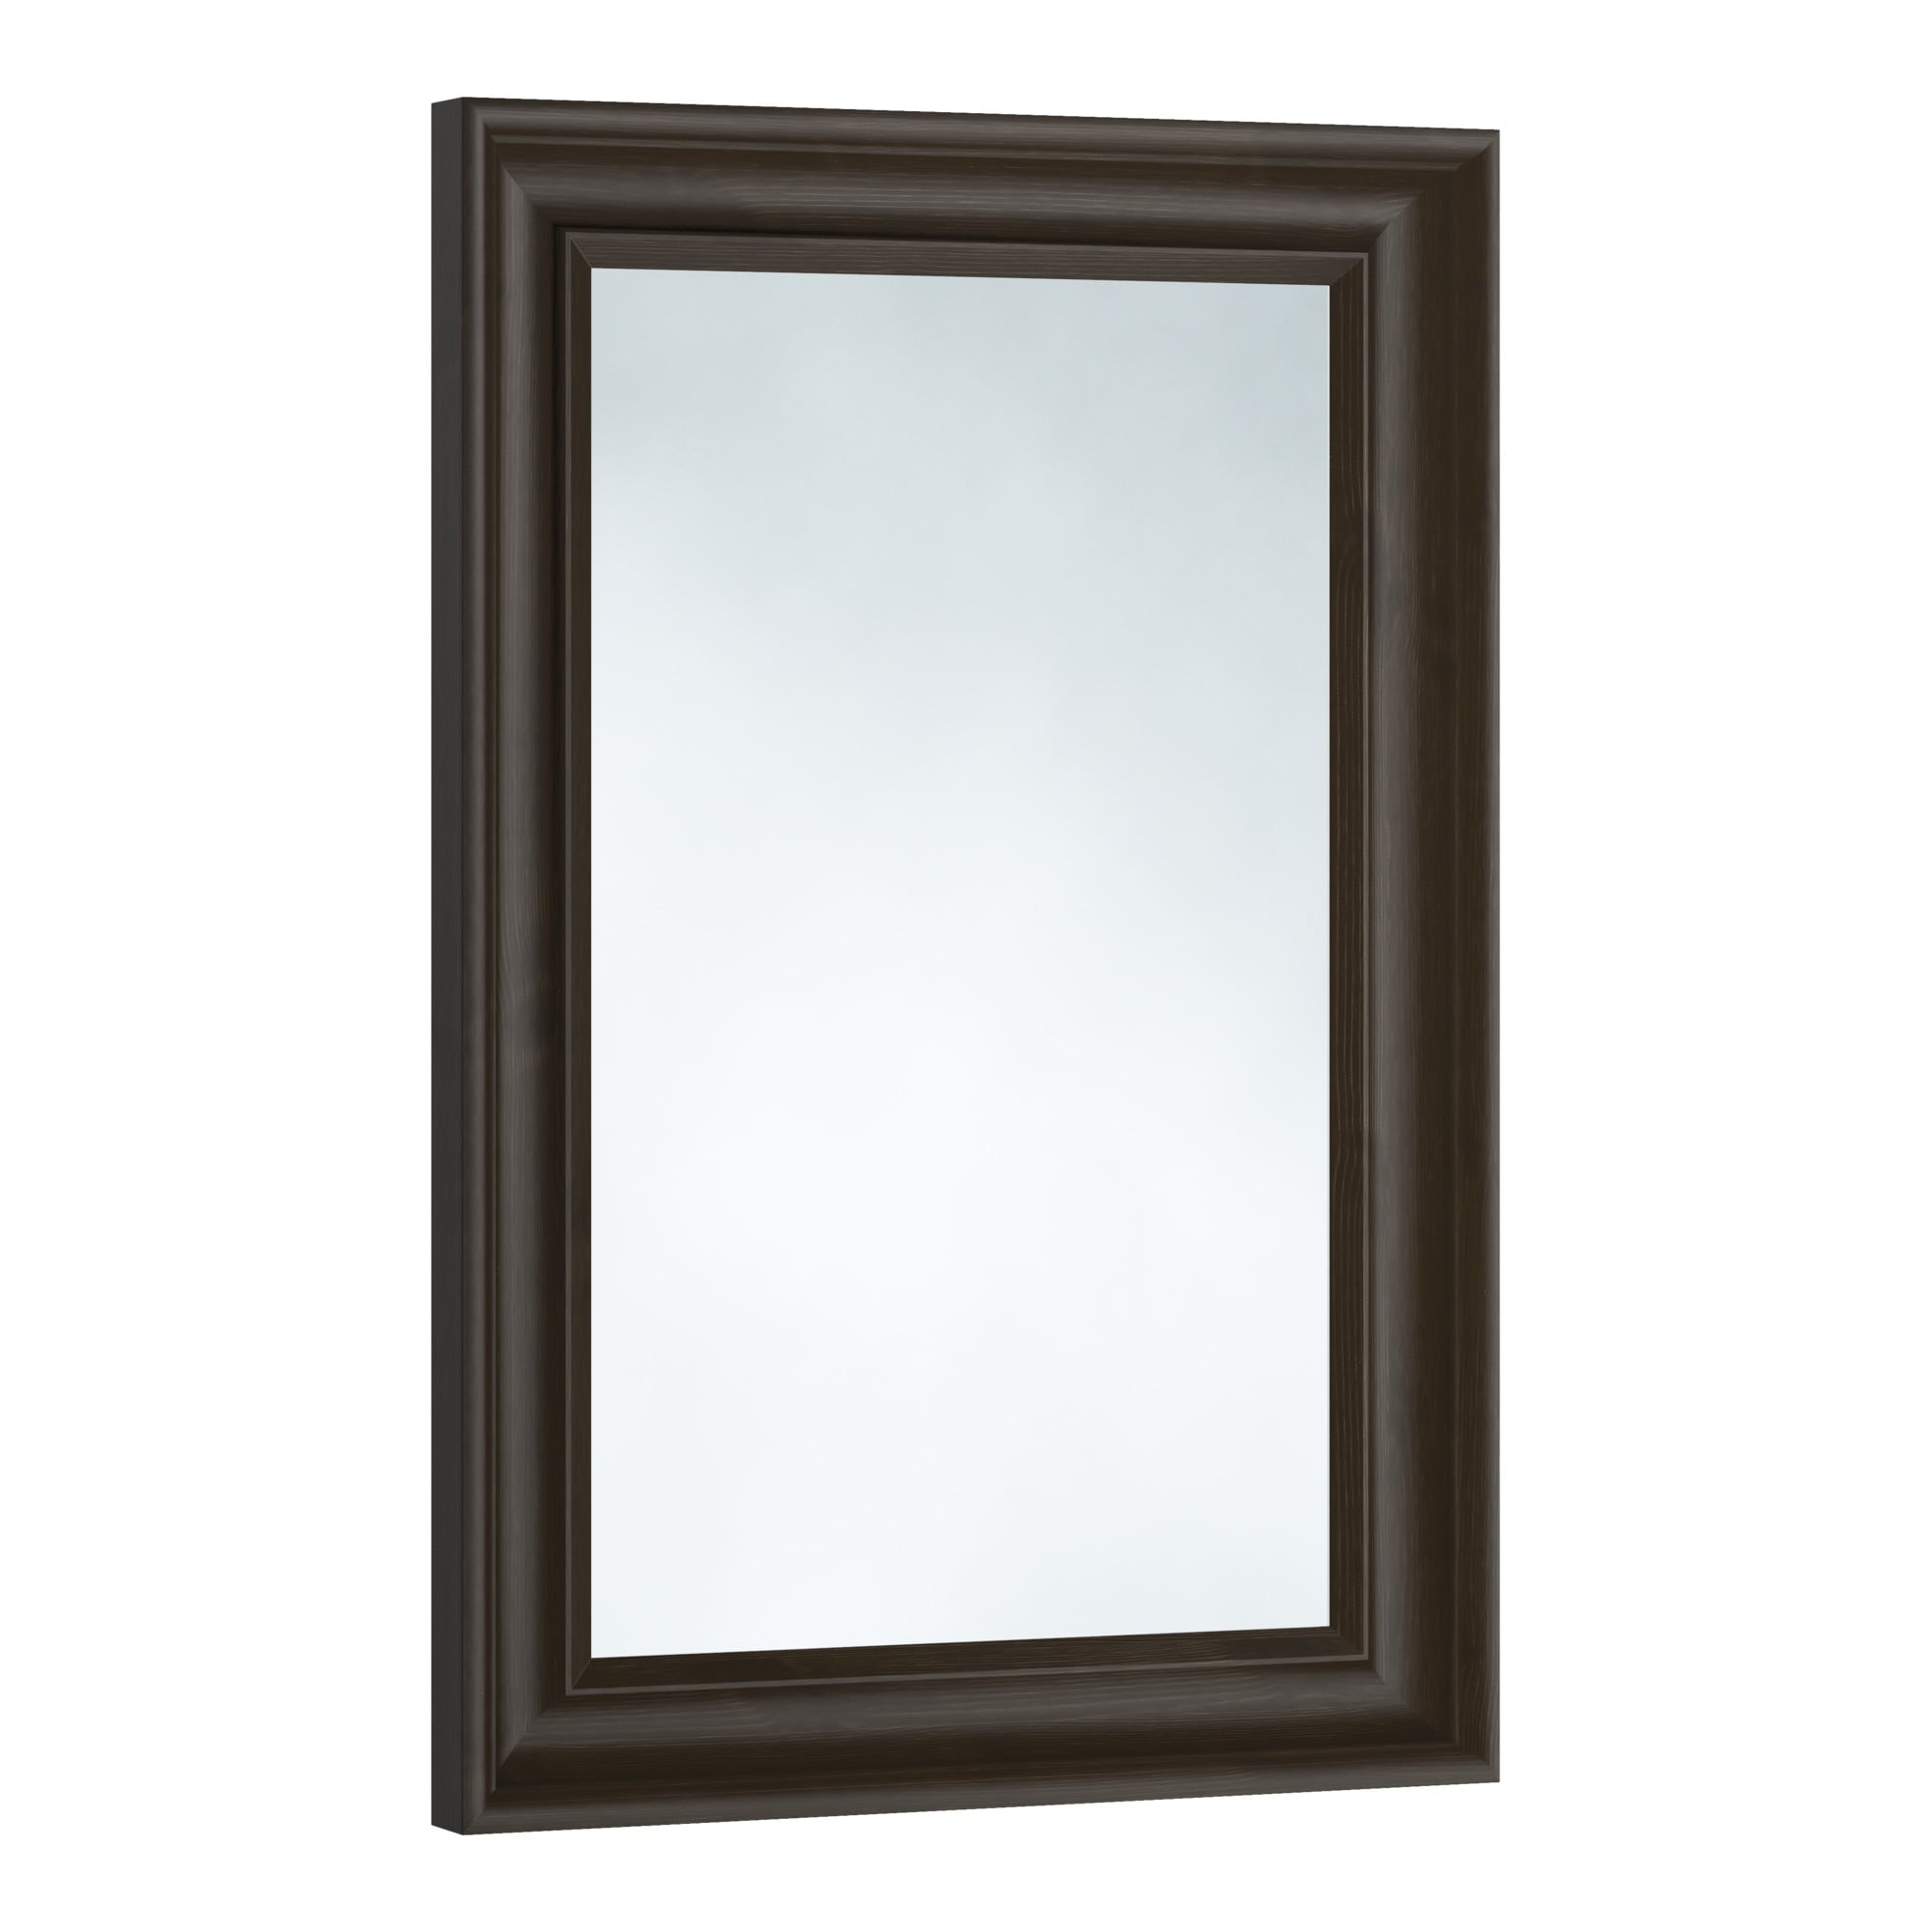 Ikea Mirror Within Vassallo Beaded Bronze Beveled Wall Mirrors (Gallery 3 of 20)